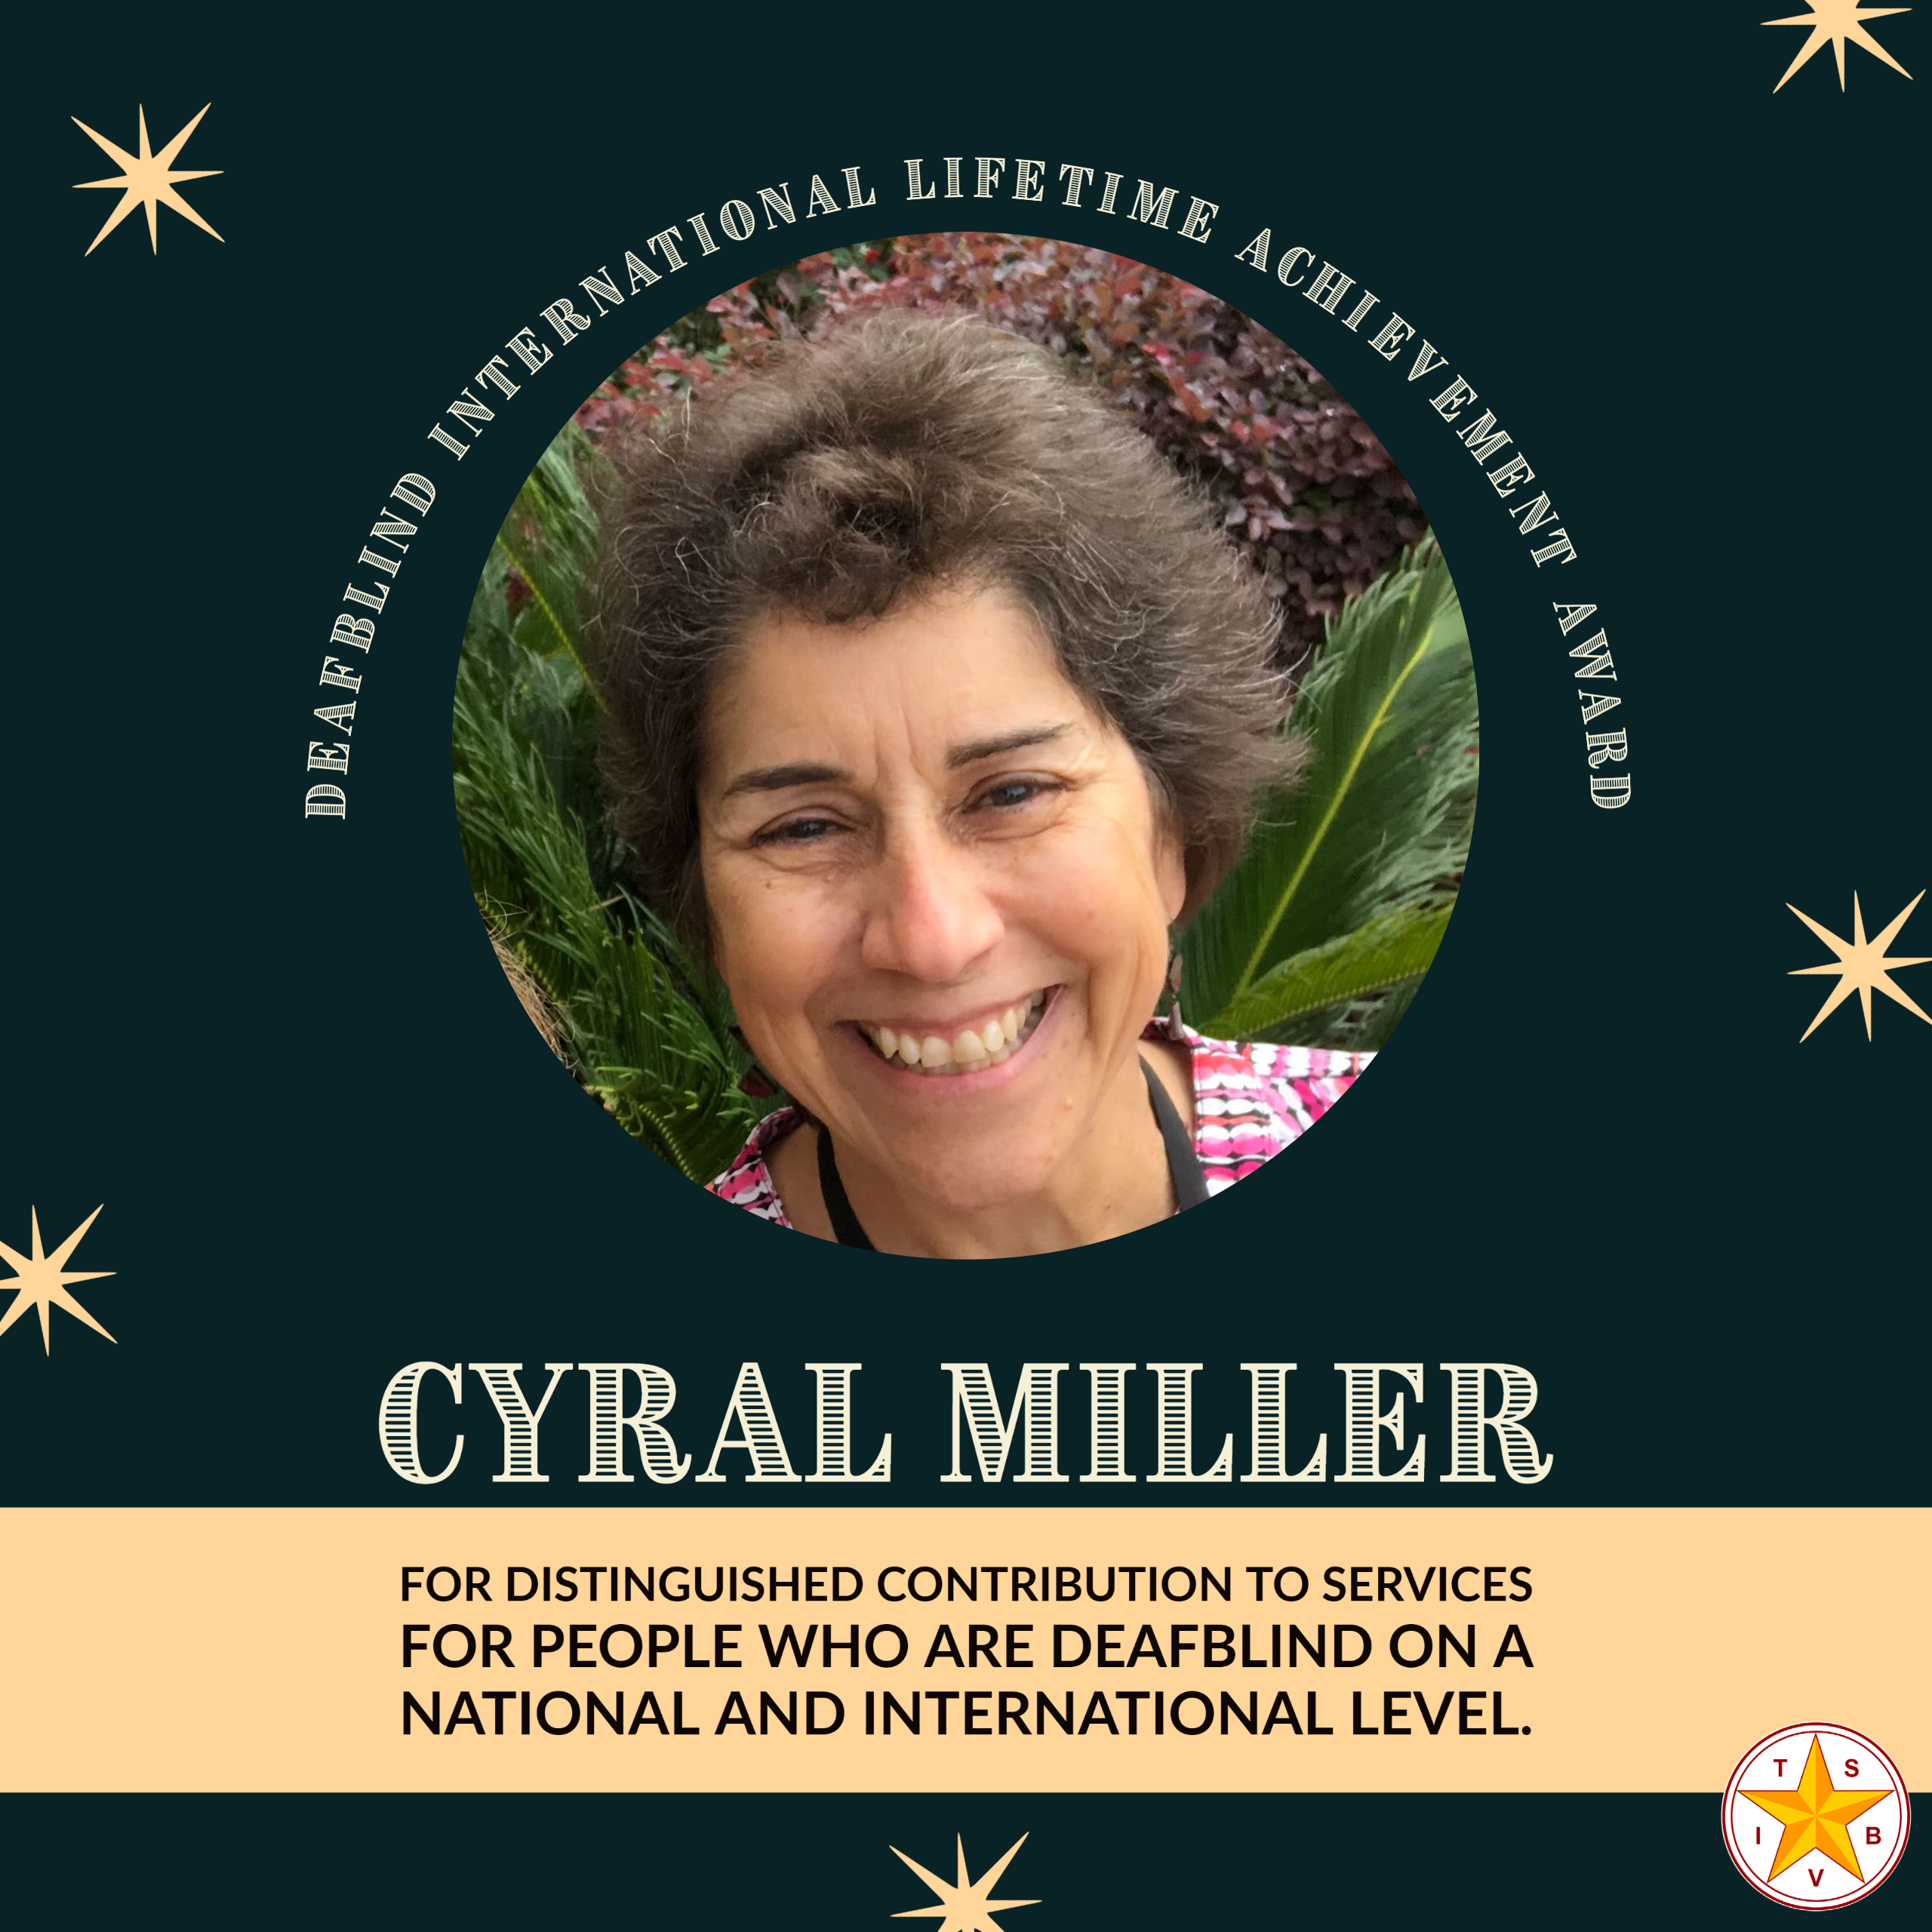 LIfetime Achievement Award recipient for 2021, Cyral Miller.